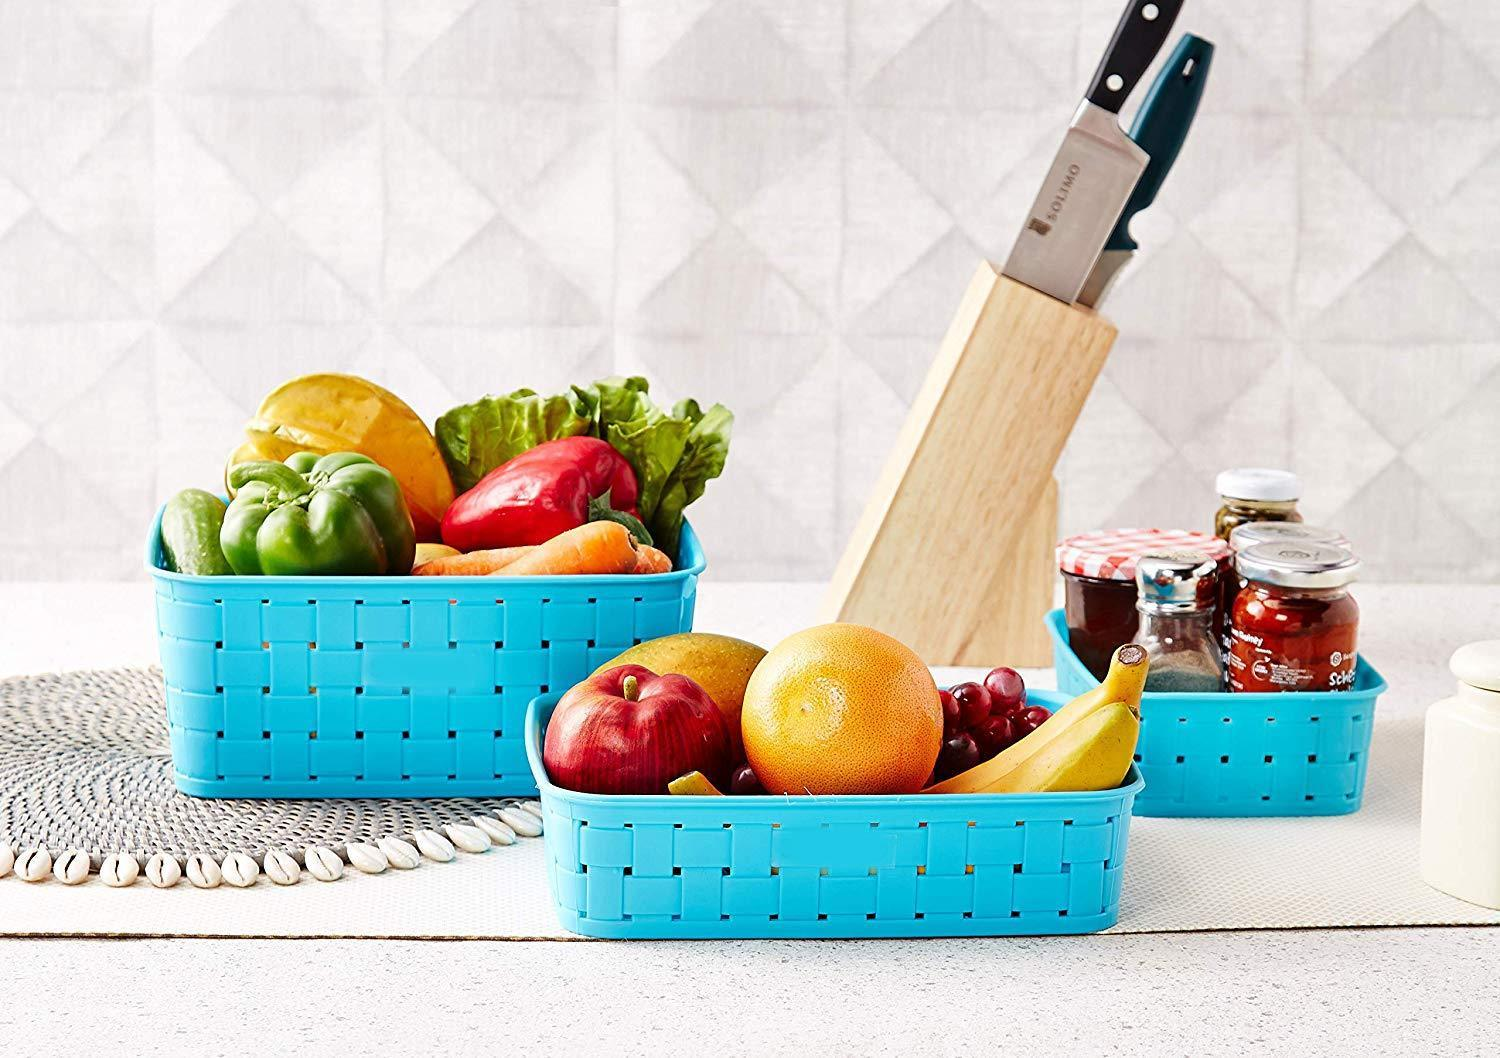 Smart Baskets for Storage(Set of 3)